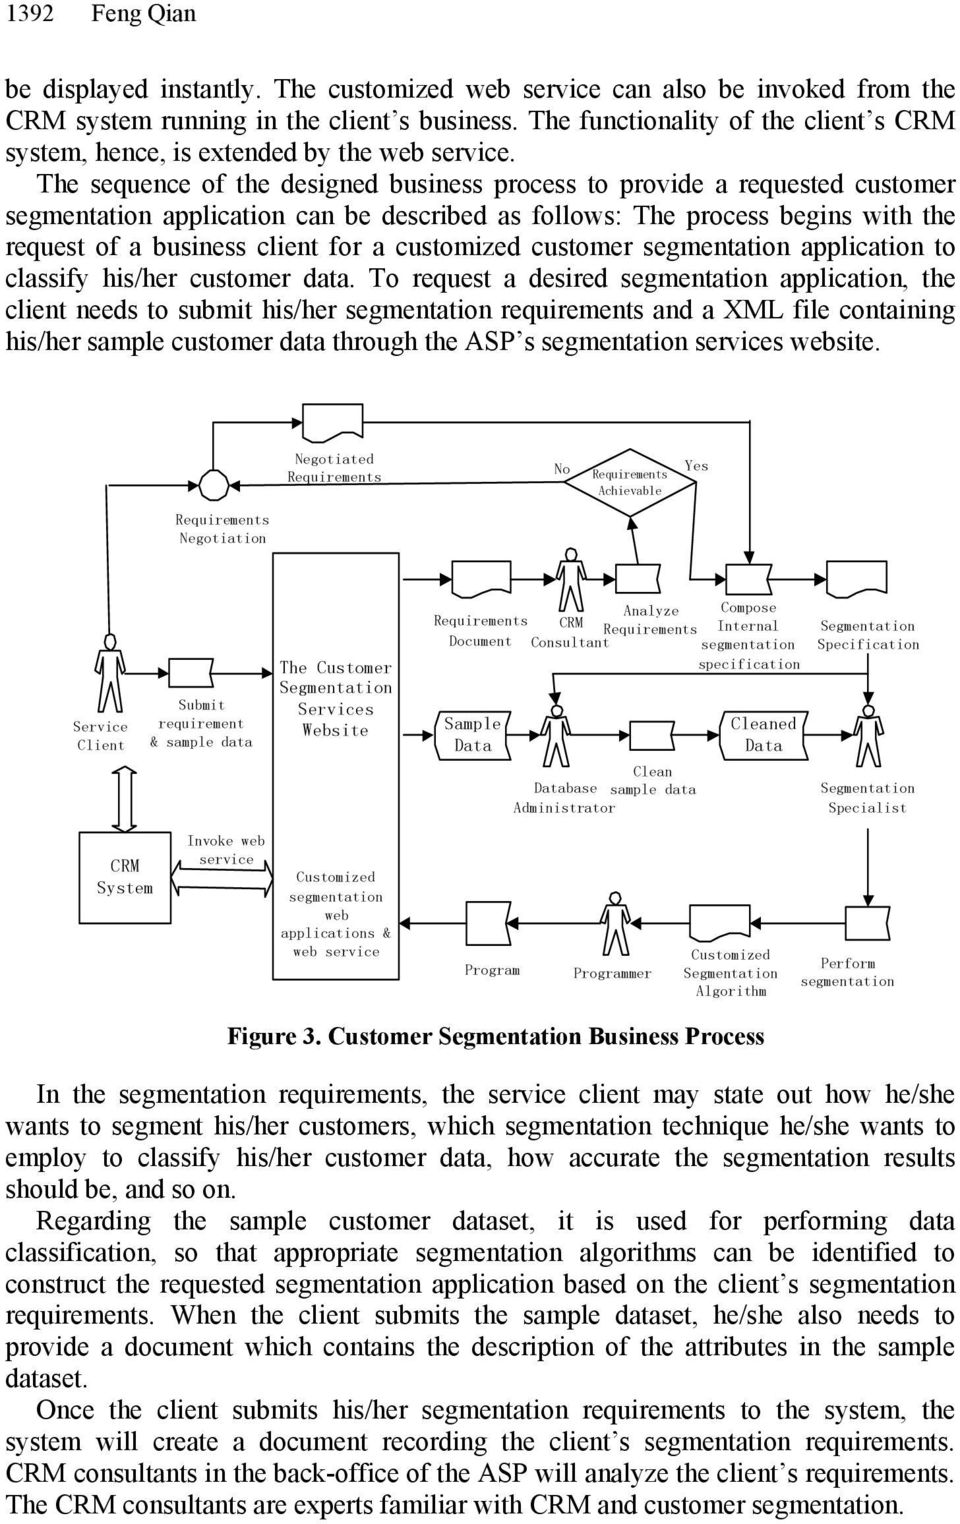 The sequence of the designed business process to provide a requested customer segmentation application can be described as follows: The process begins with the request of a business client for a